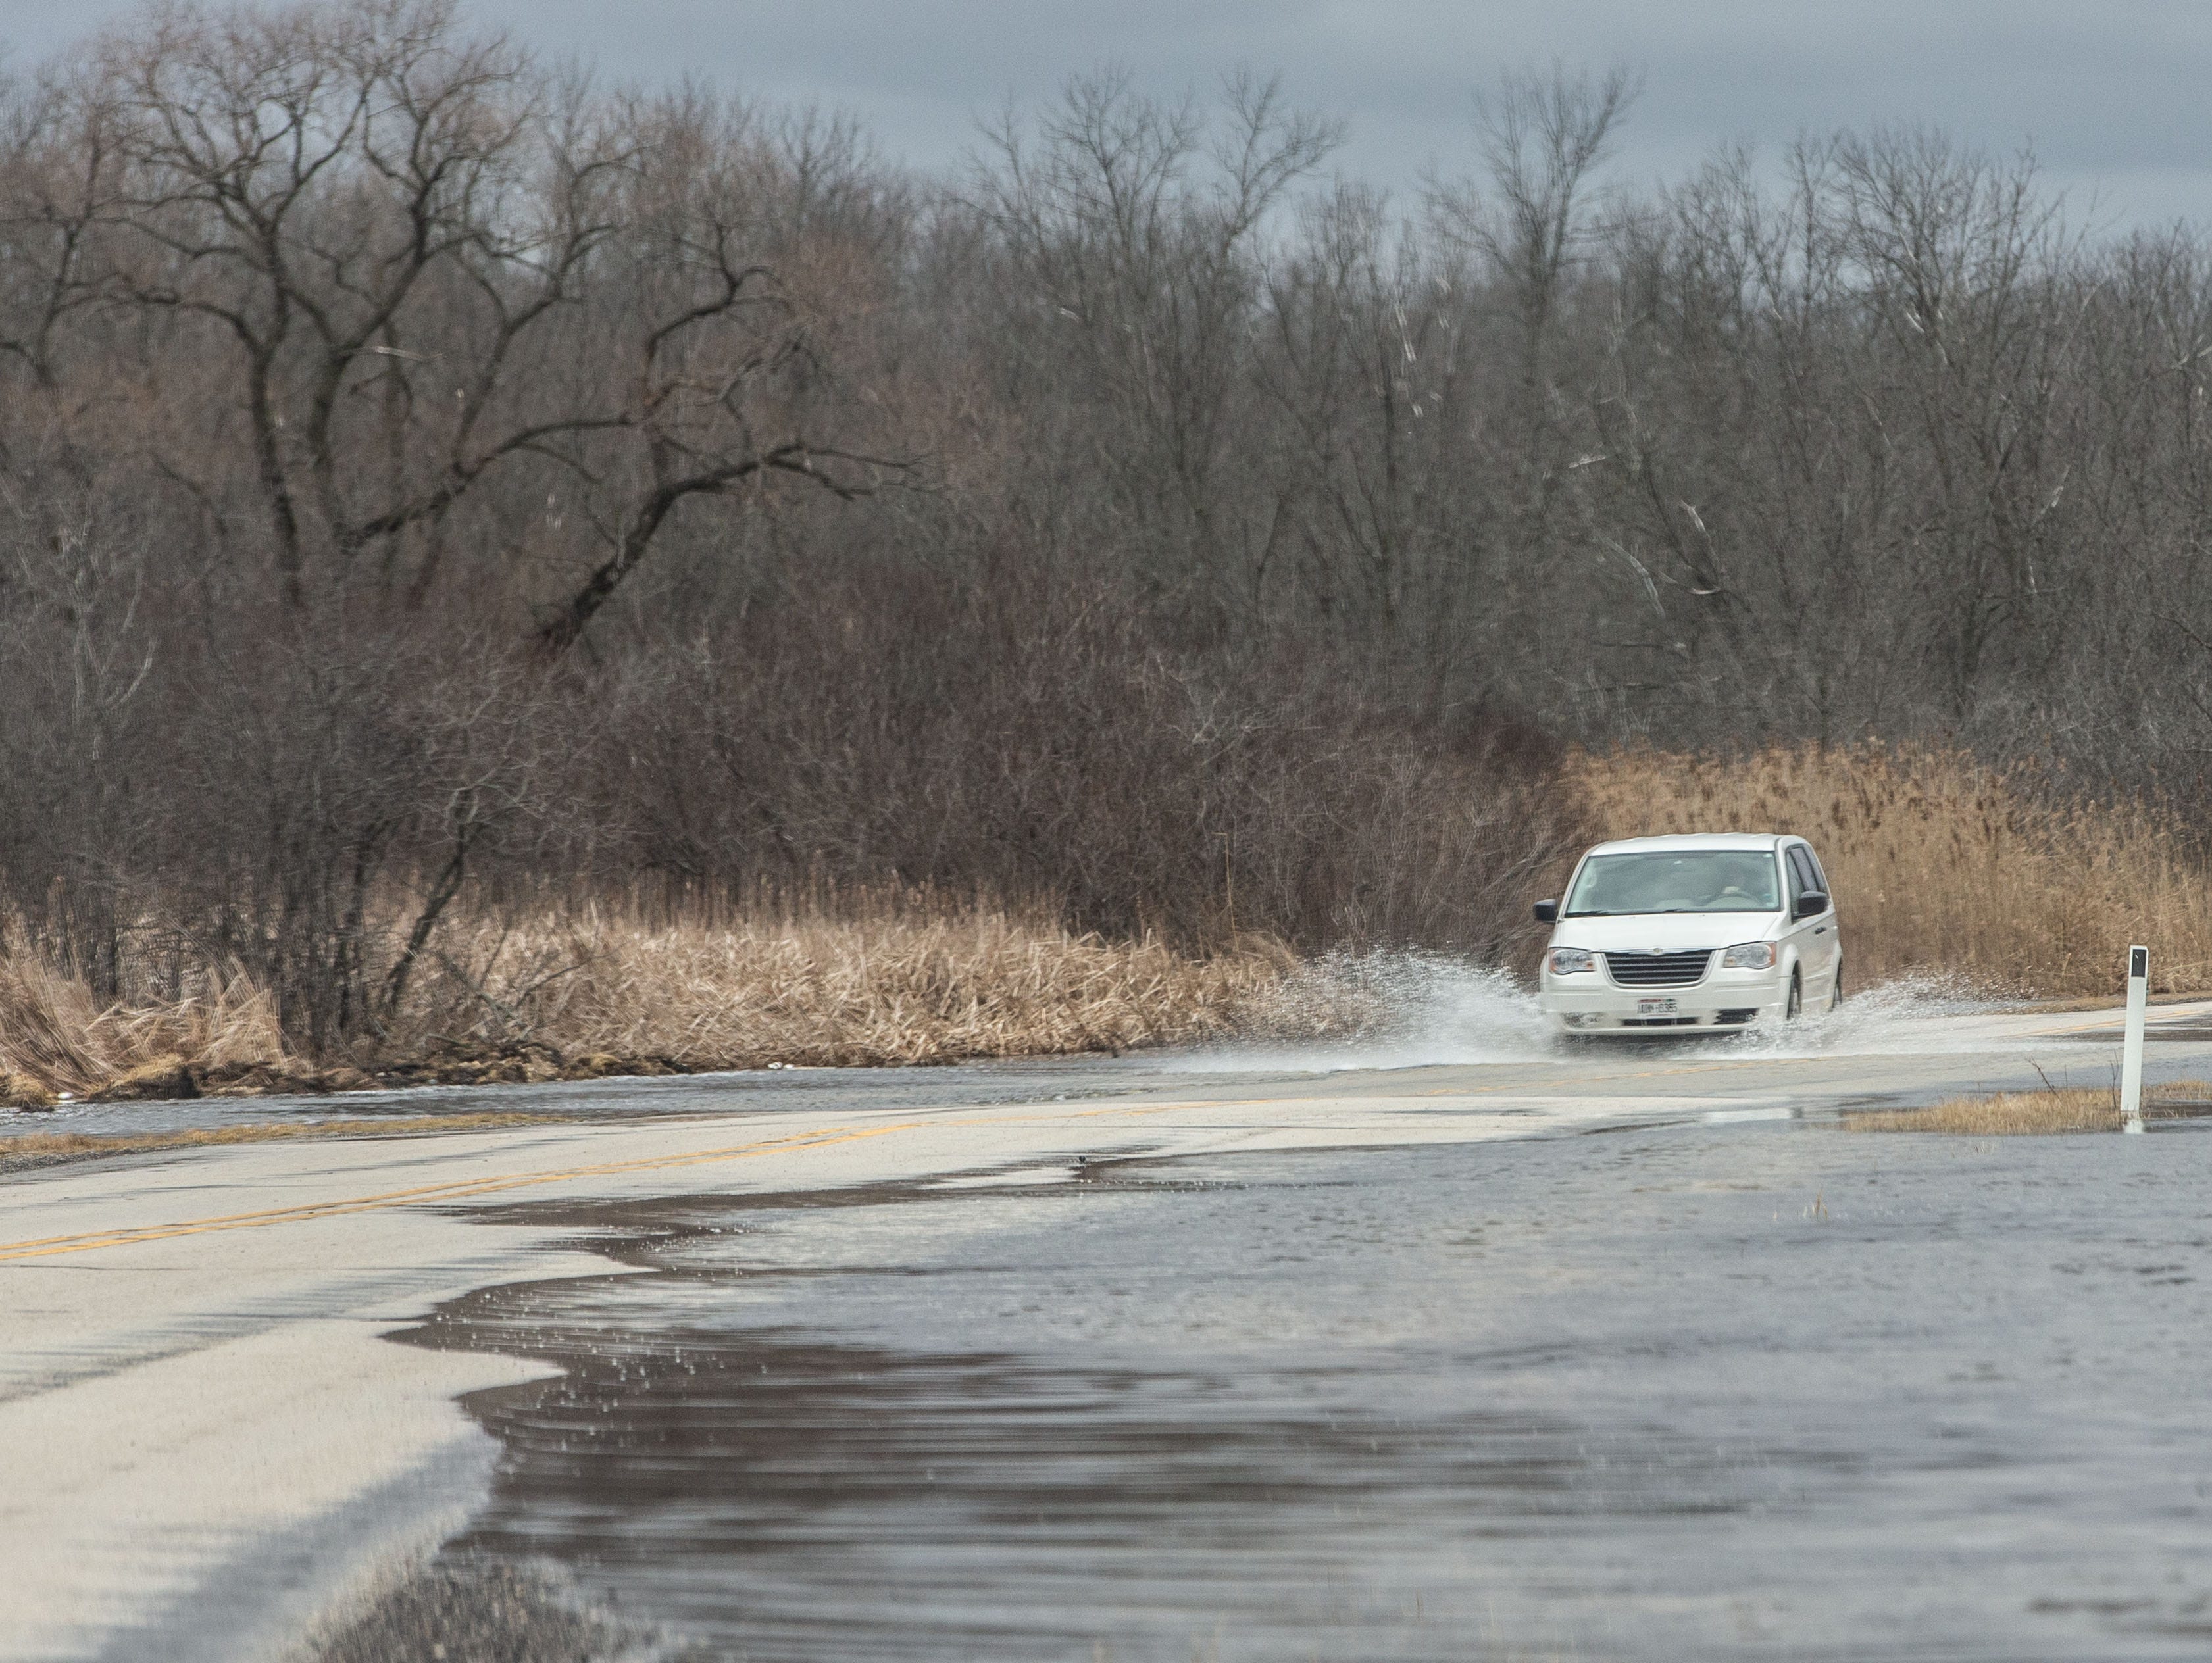 A van drives through flood water on Petersen Road in Hartland on Friday, March 15, 2019. Spring-like temperatures caused flooding across both Washington and Waukesha counties.